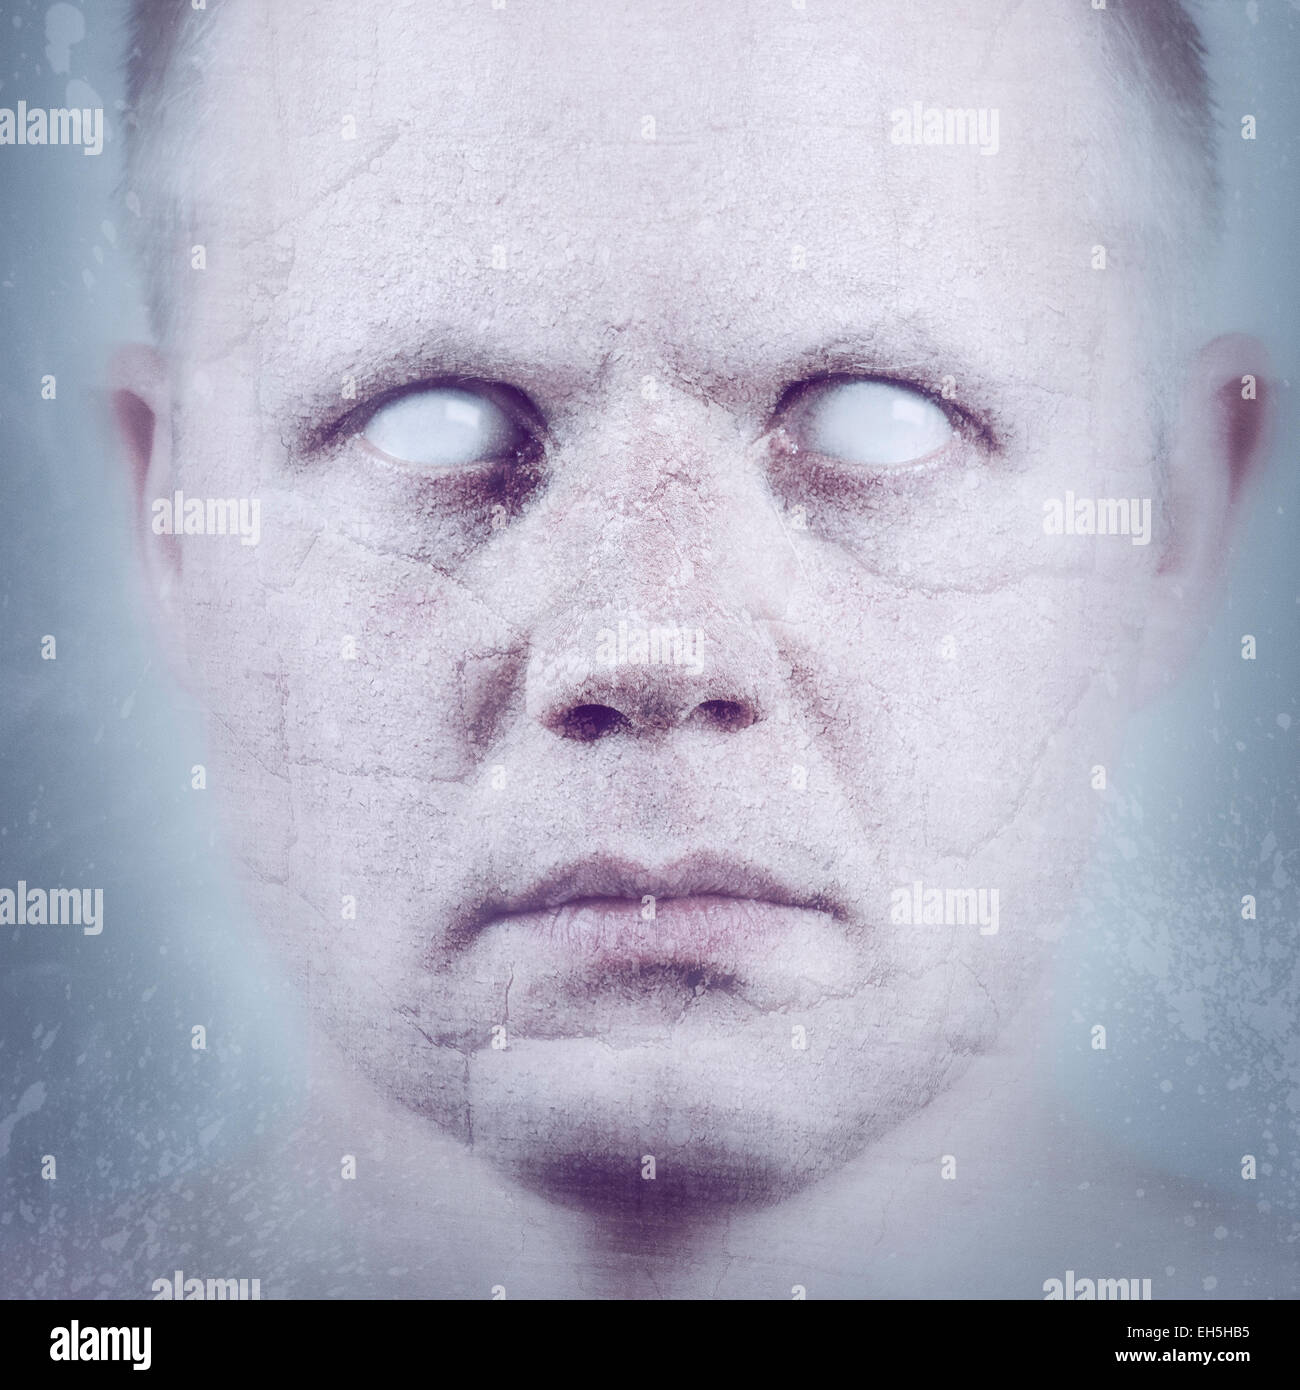 Scary man with white eyes in ice / stone. - Stock Image